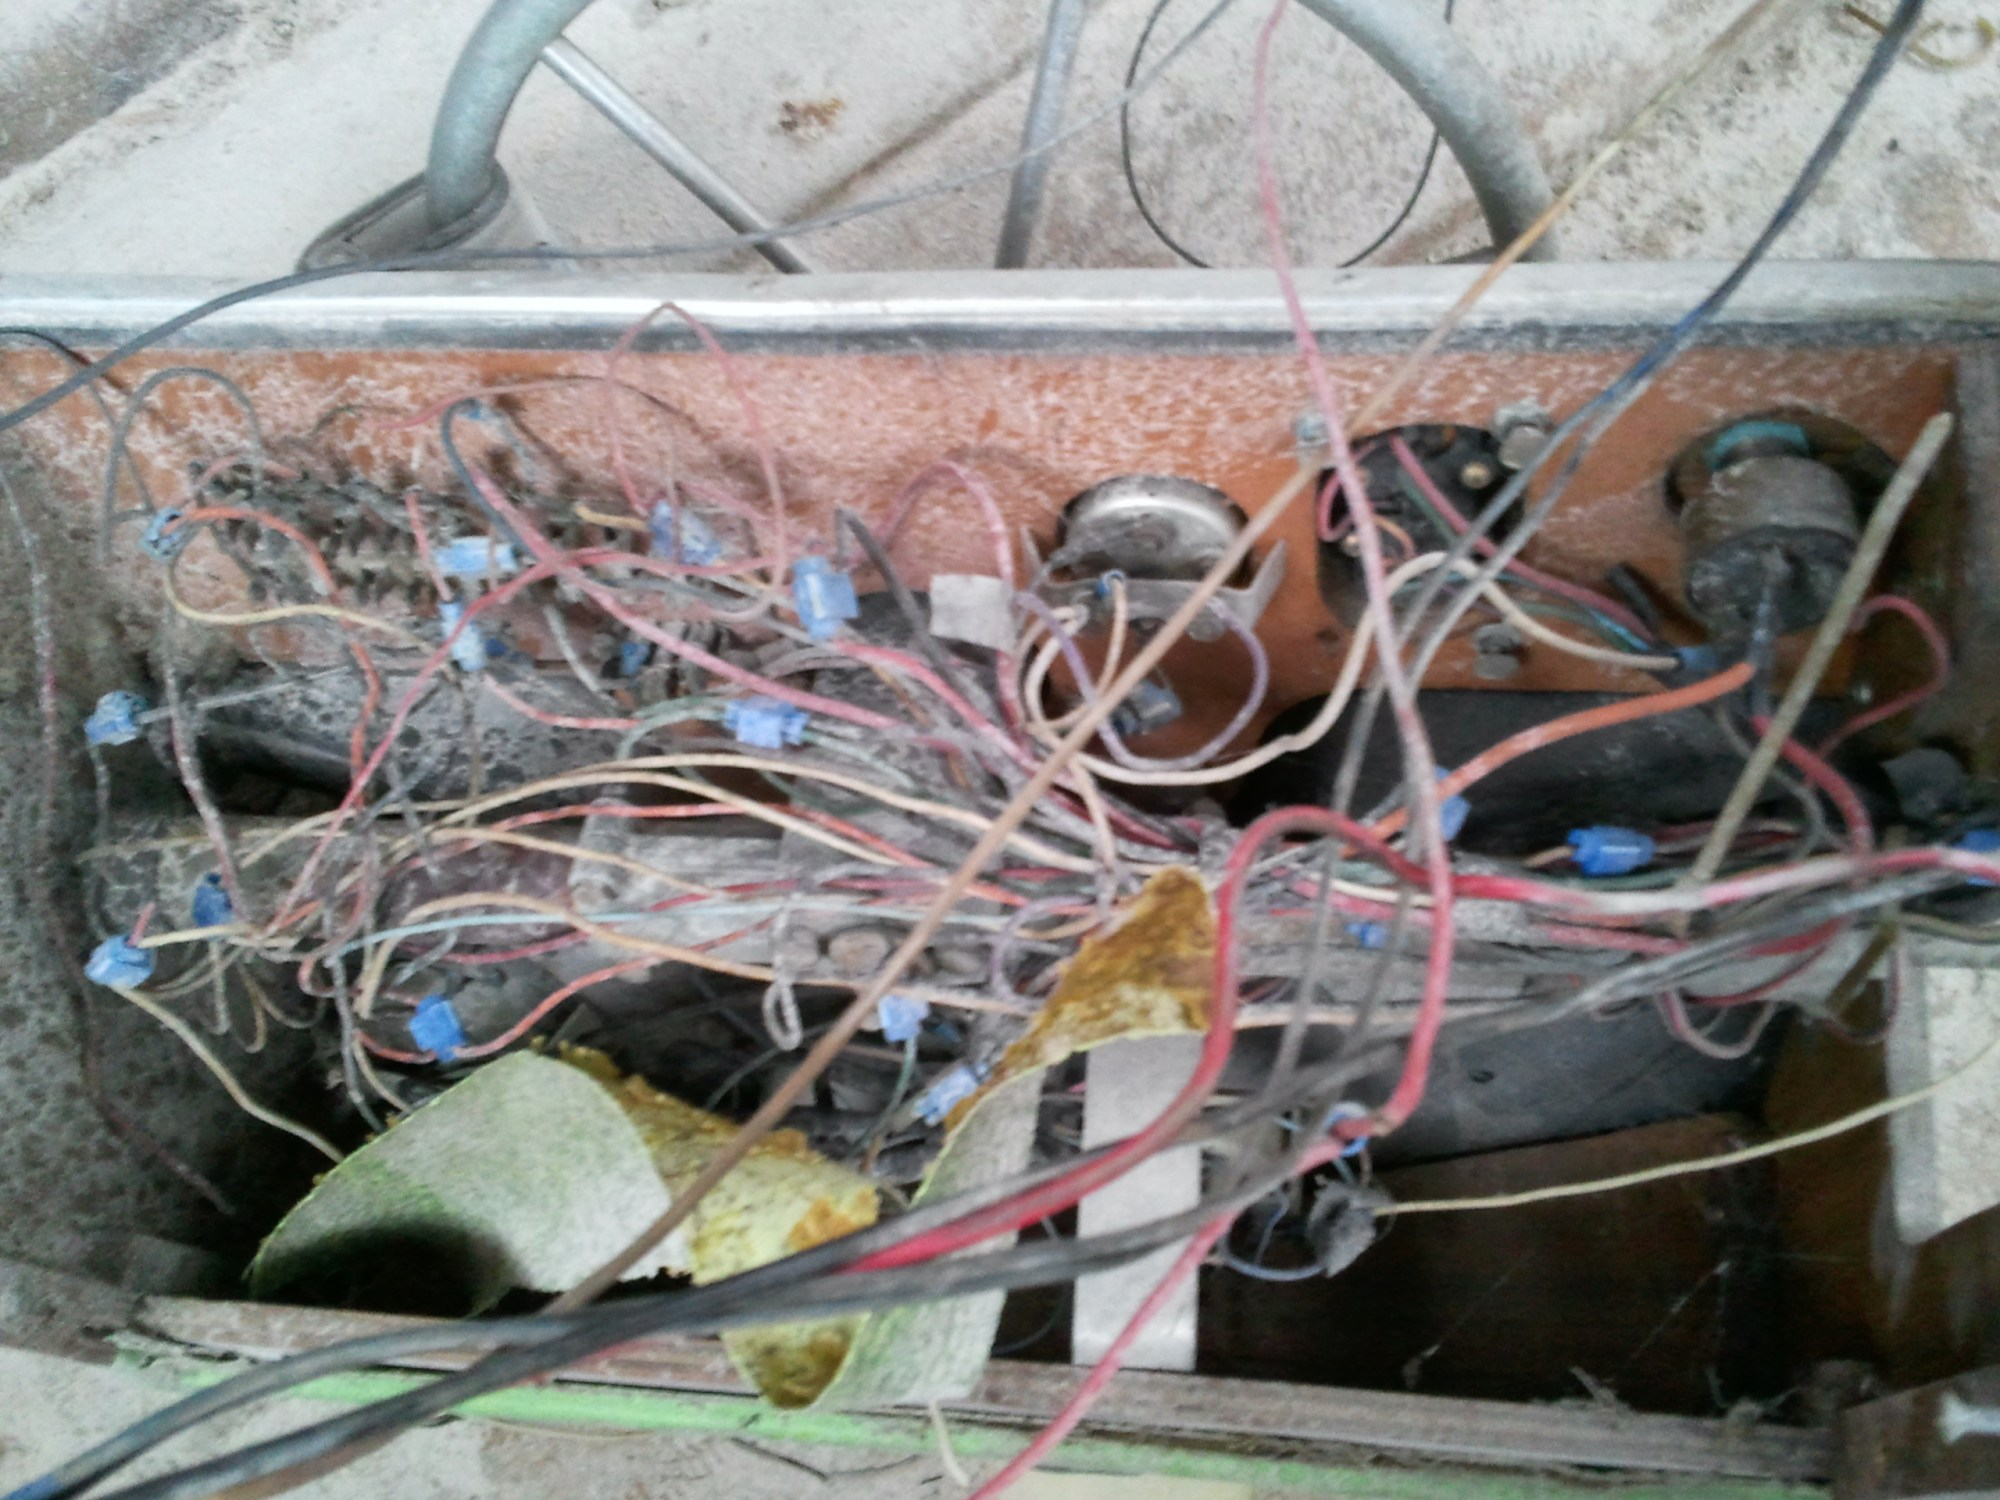 hight resolution of that is the back side of the console yikes right most of that rat s nest went toward the rear of the boat i assume to the battery